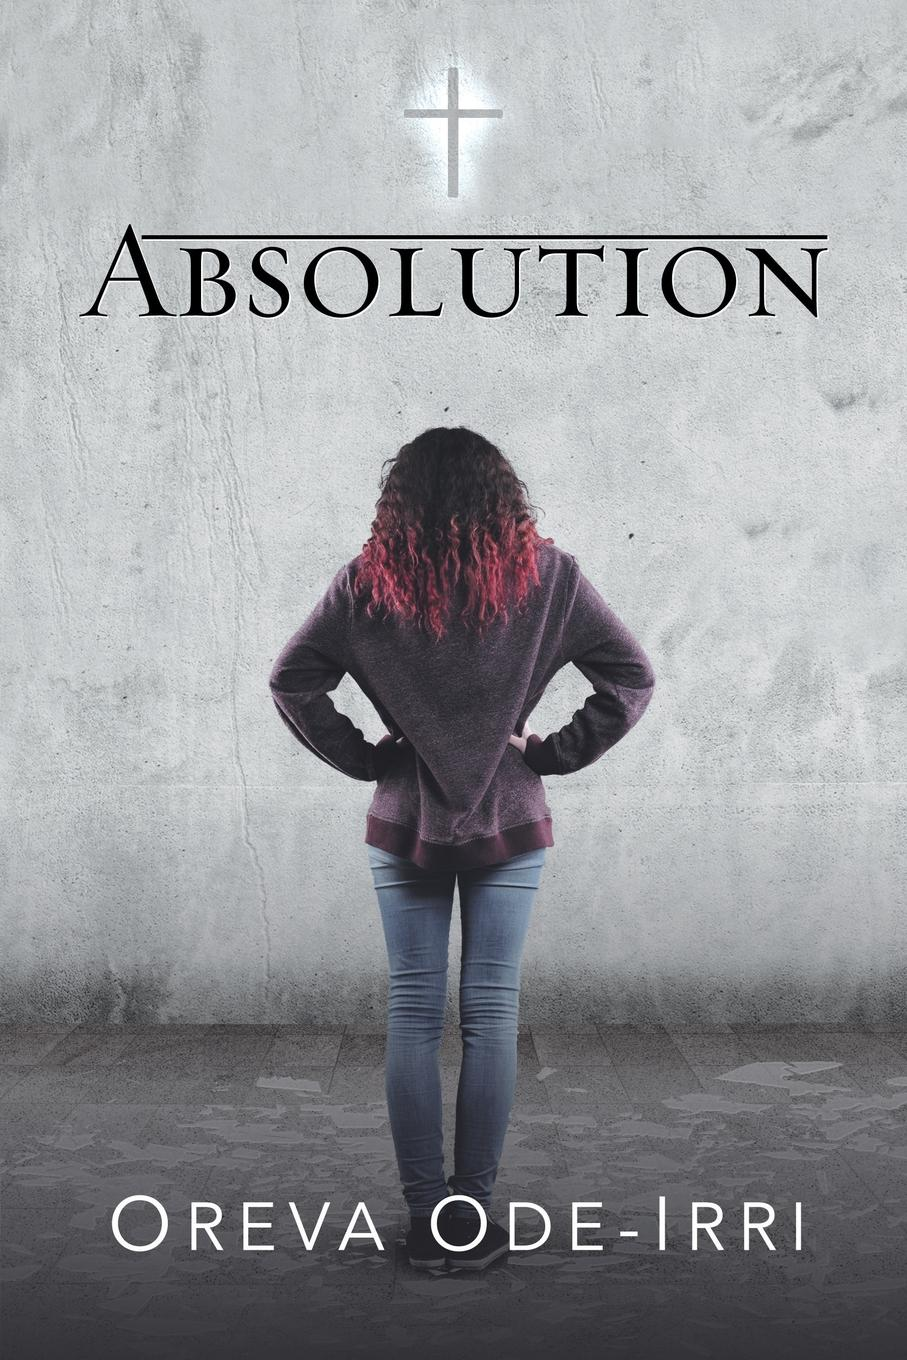 Oreva Ode-Irri Absolution keven ashley gambold how to blow a million dollars an ex entrepreneur s tale of what not to do